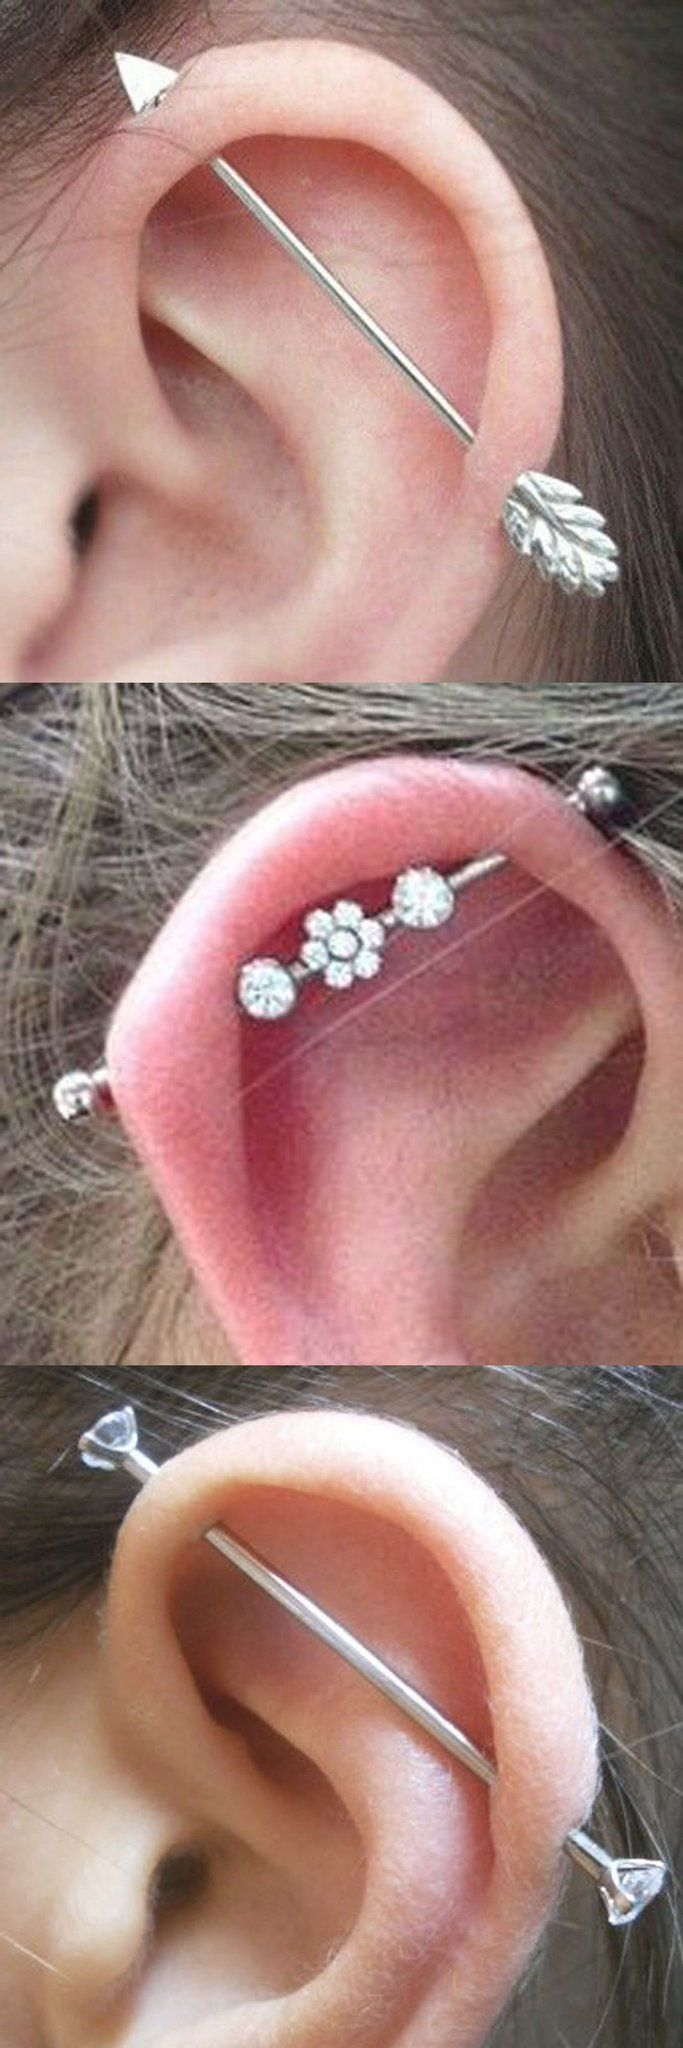 Upper nose piercing   Trending Ear Piercing Ideas to Try This Summer   Industrial